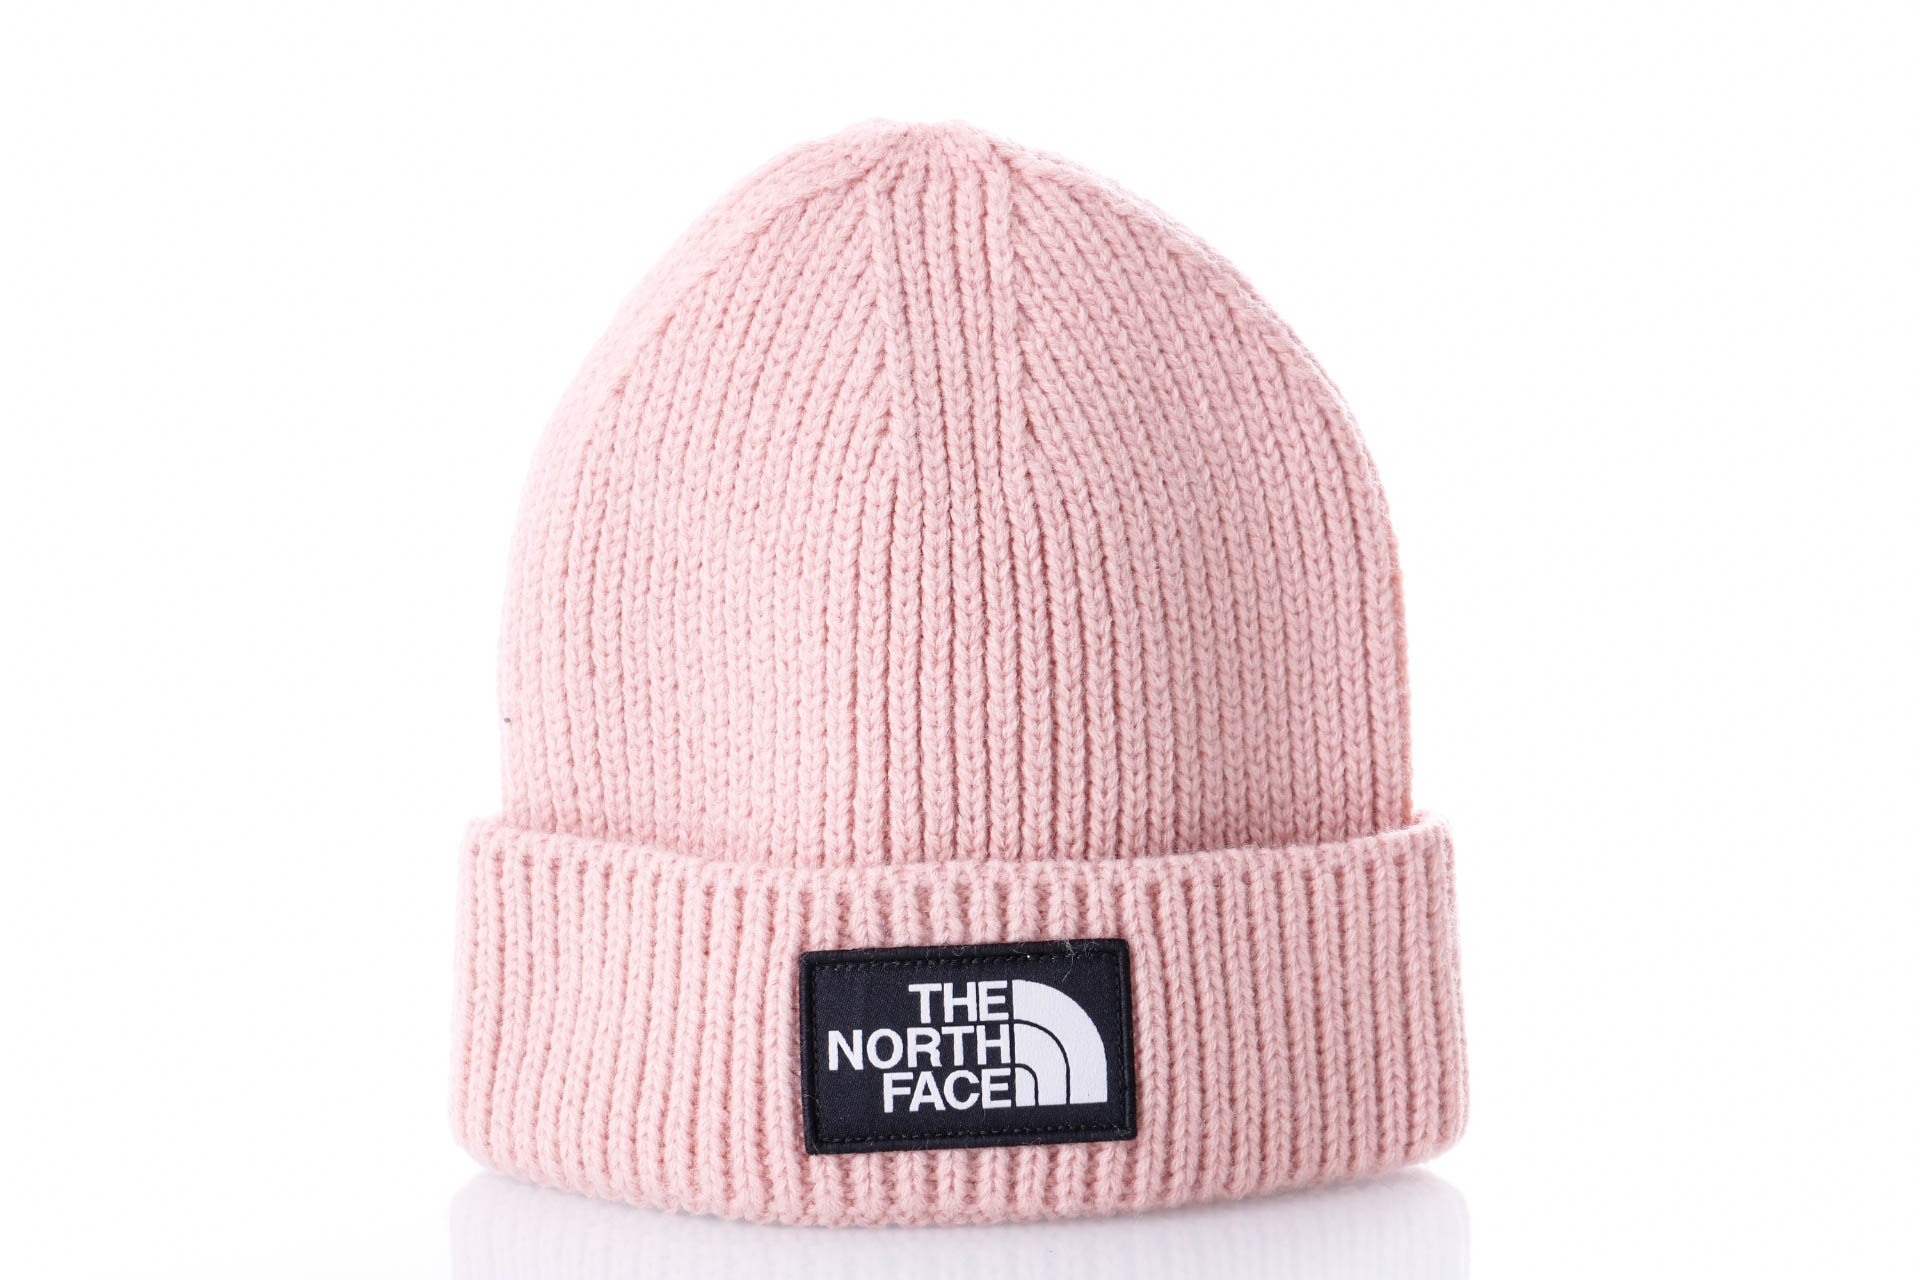 Afbeelding van The North Face TNF LOGO BOX CUFF BE T93FJX3YM Muts MISTY ROSE